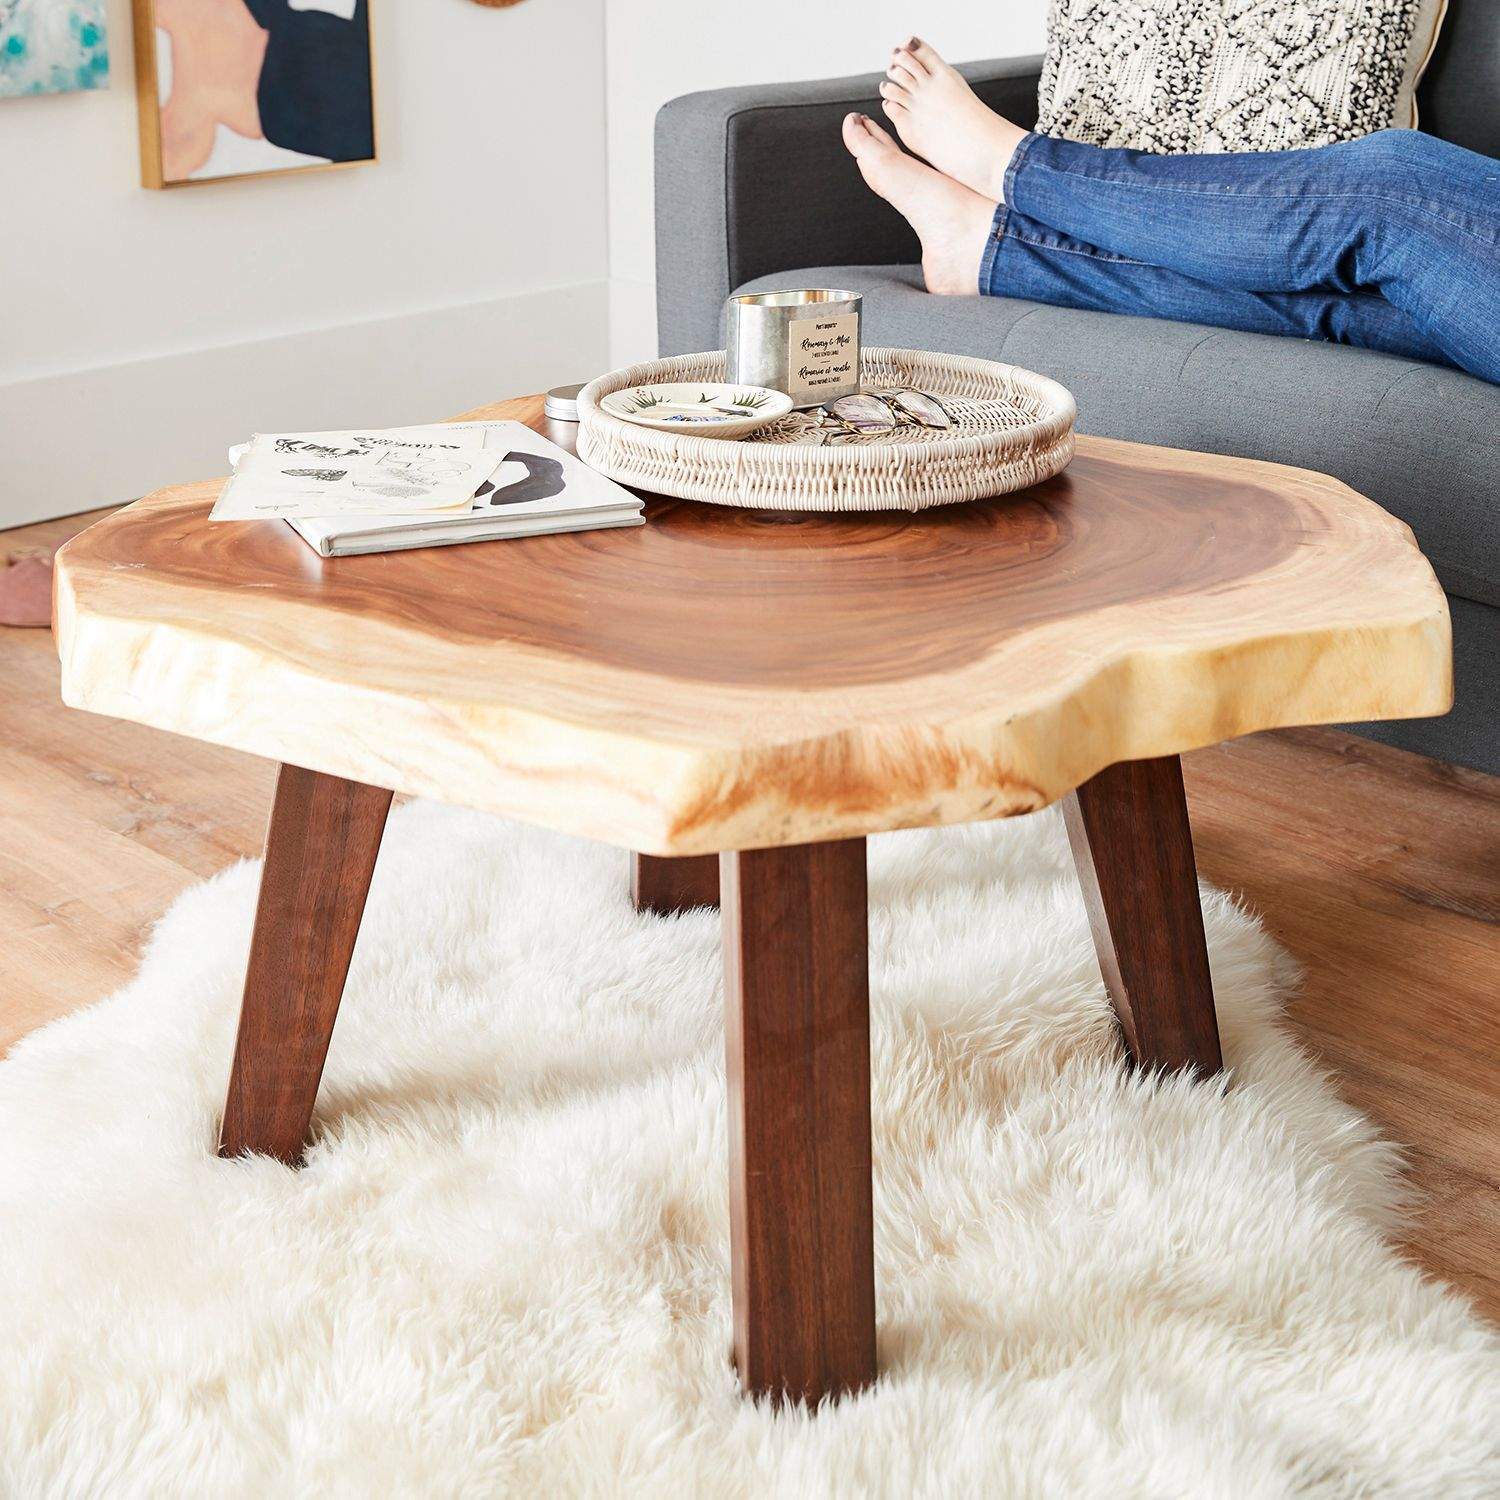 Log Coffee Table With Images Coffee Table Log Coffee Table Table